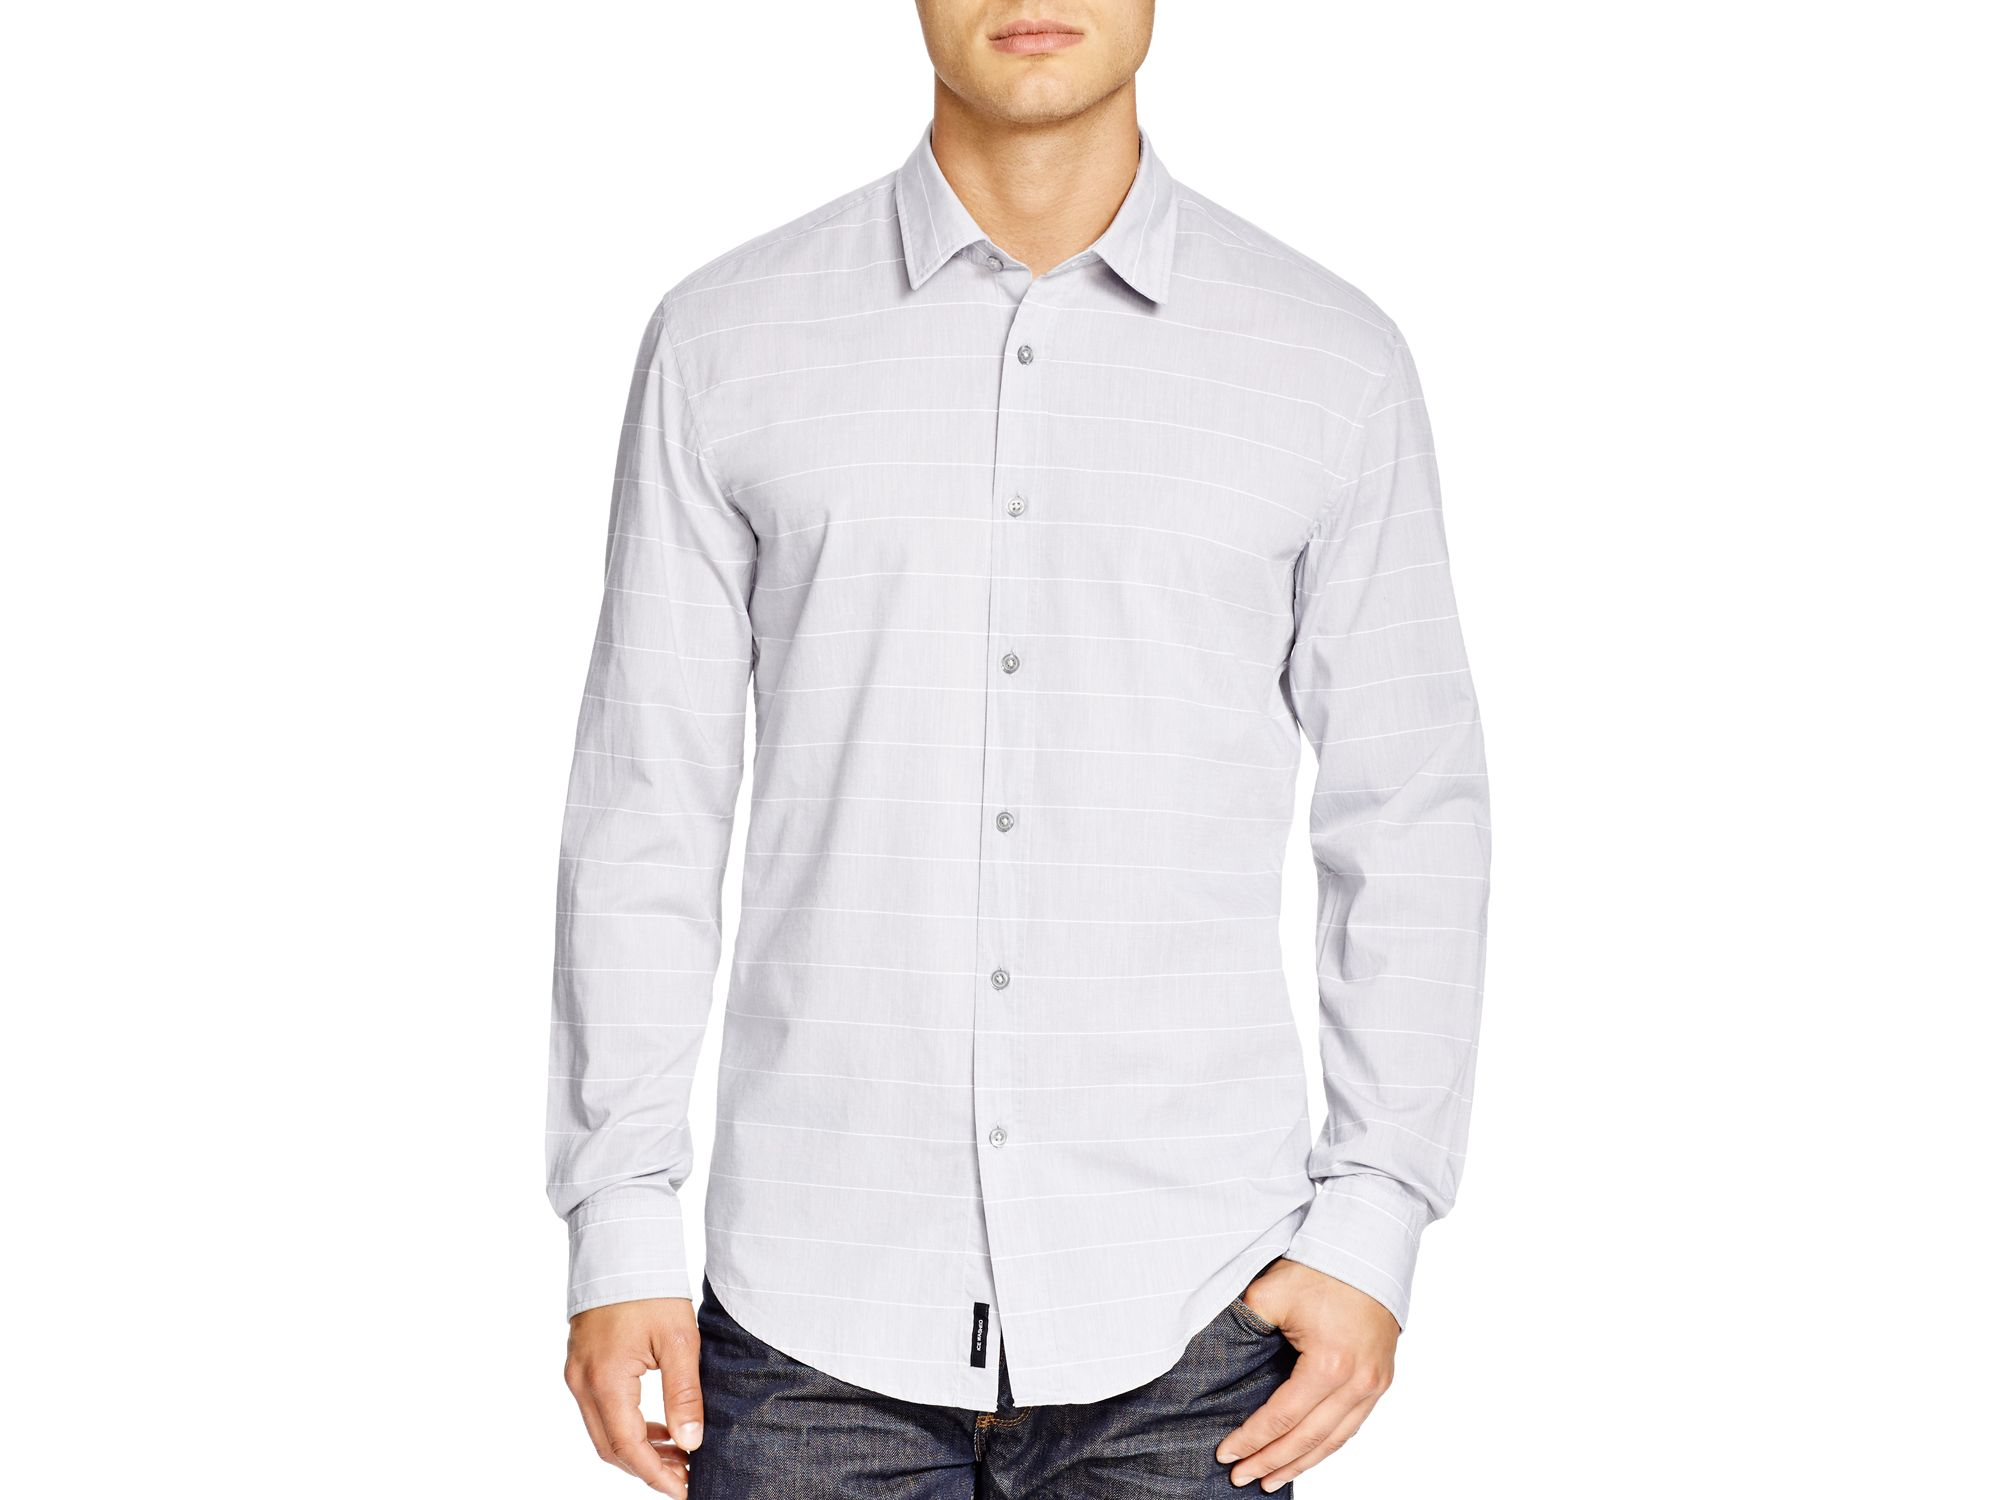 Boss gray boss ronni slim fit button down shirt for men for Athletic fit button down shirts